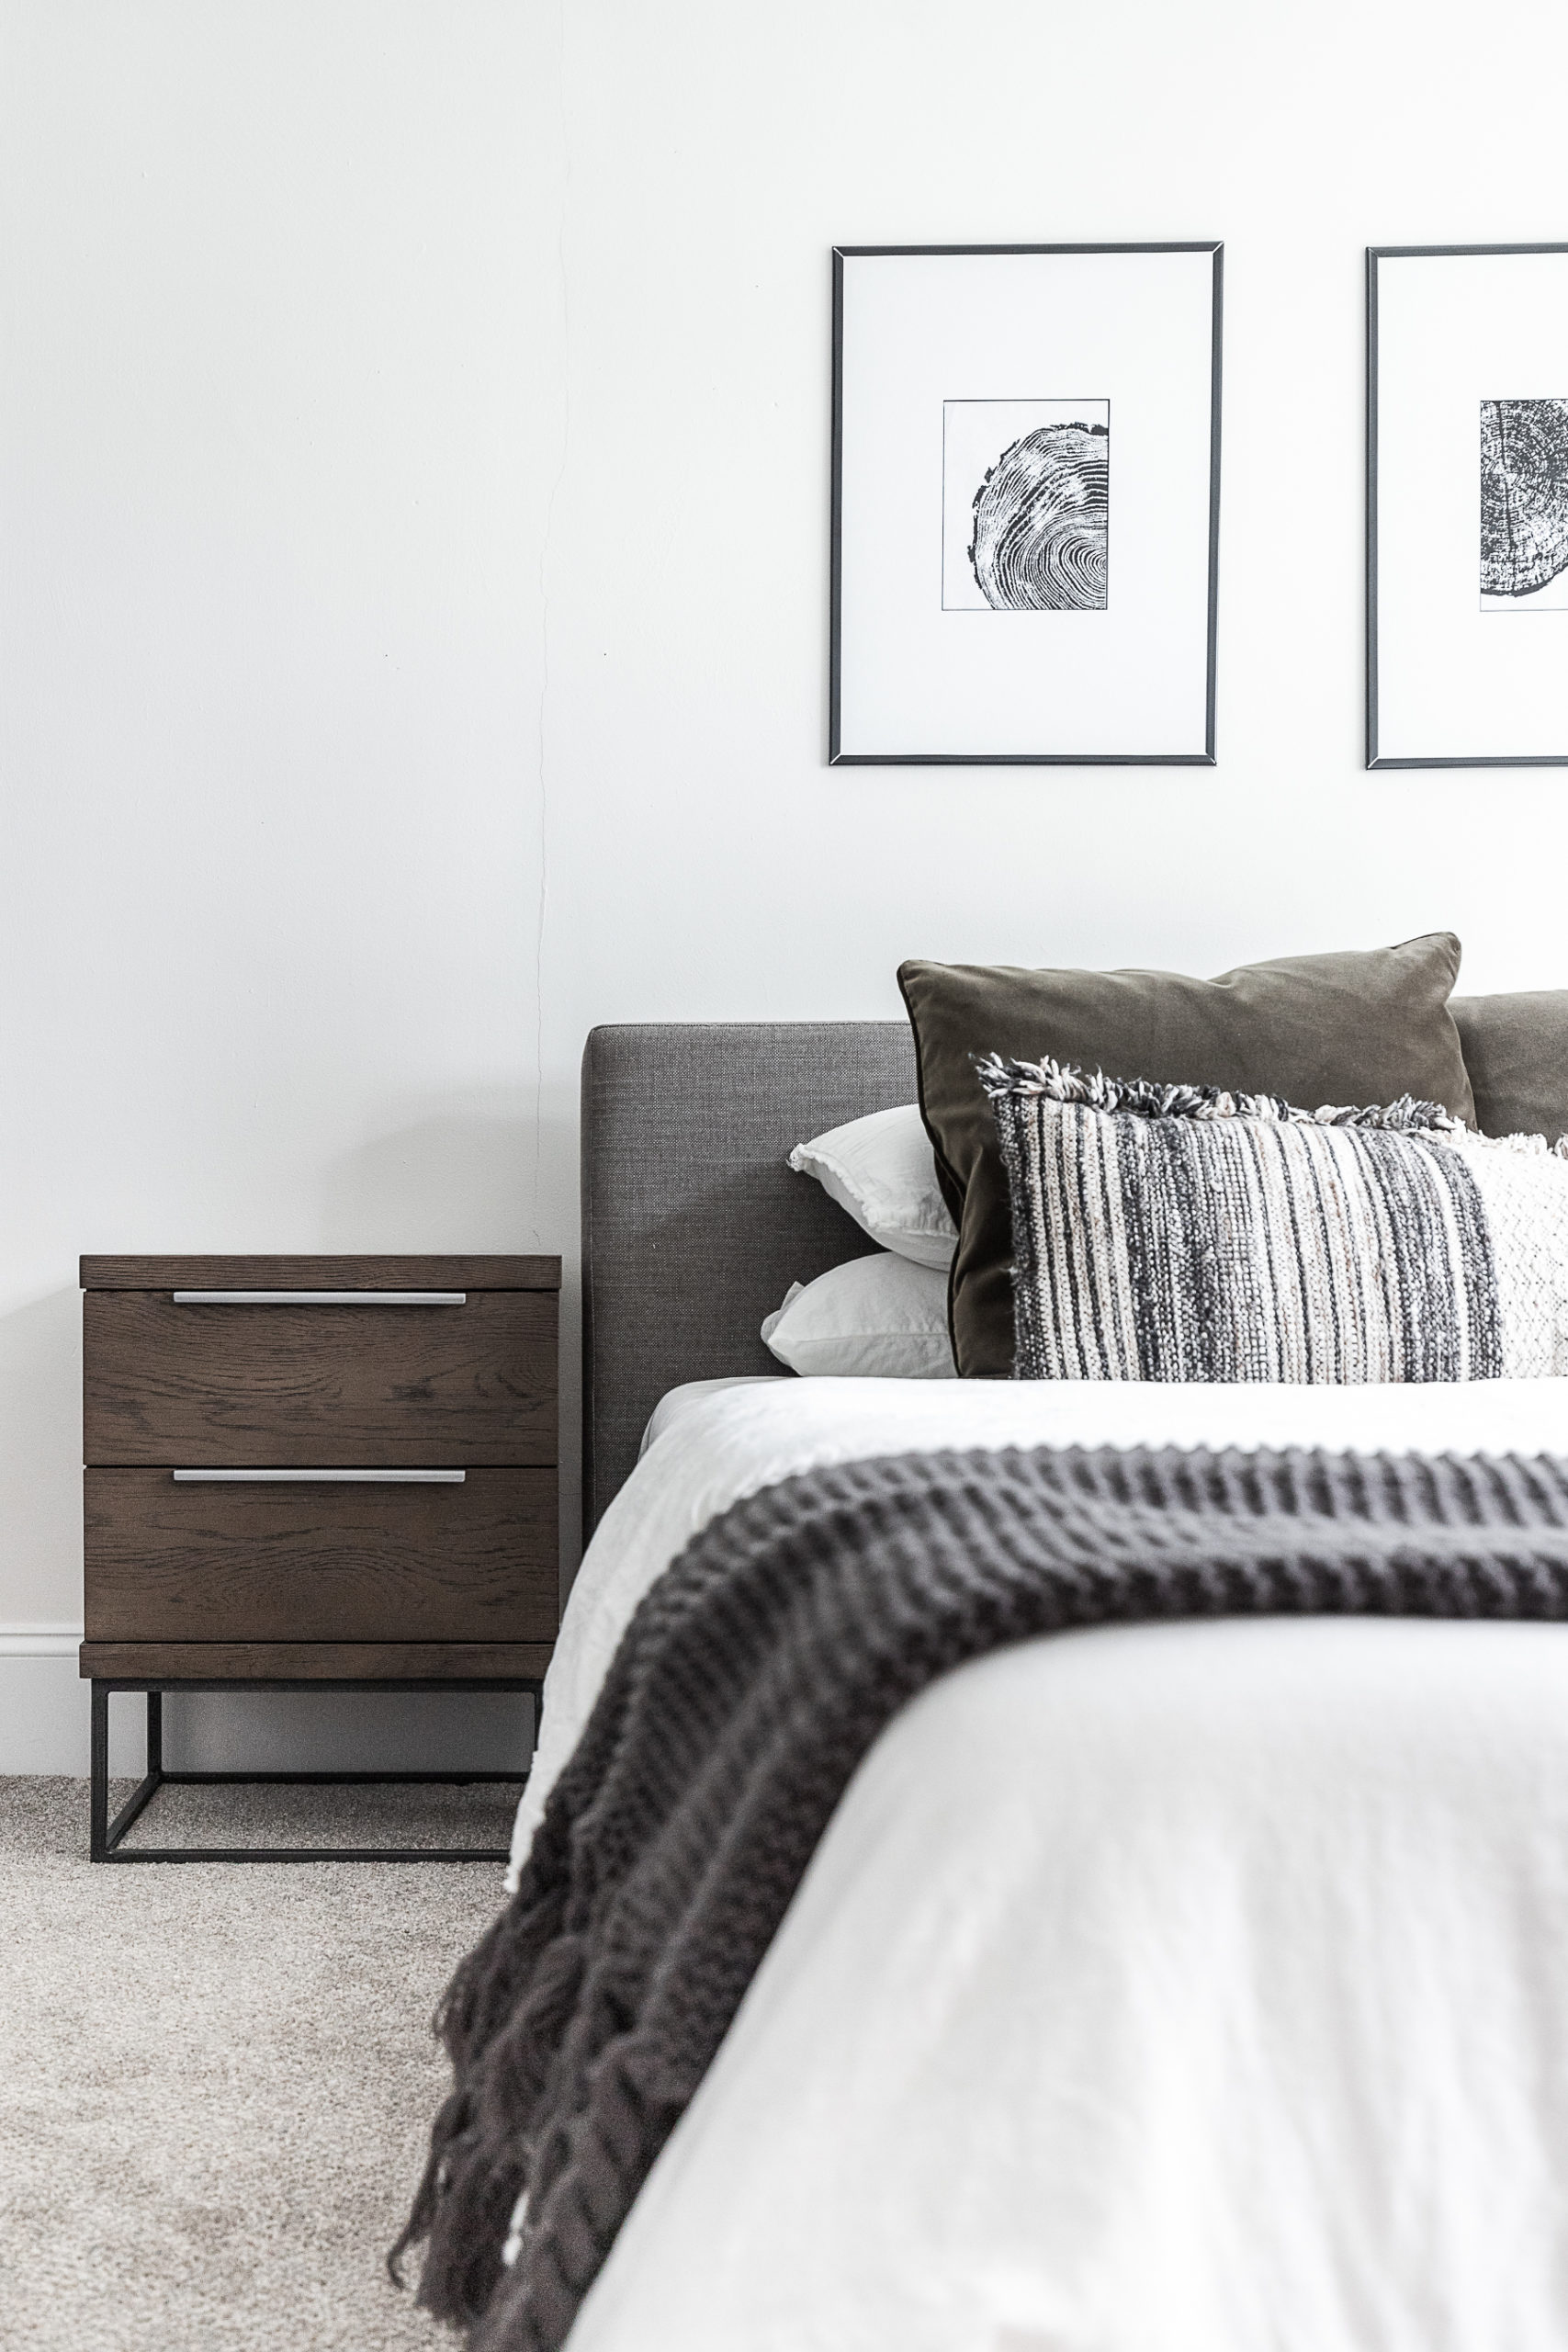 How to Make a Bed – Cozy Minimalist Style